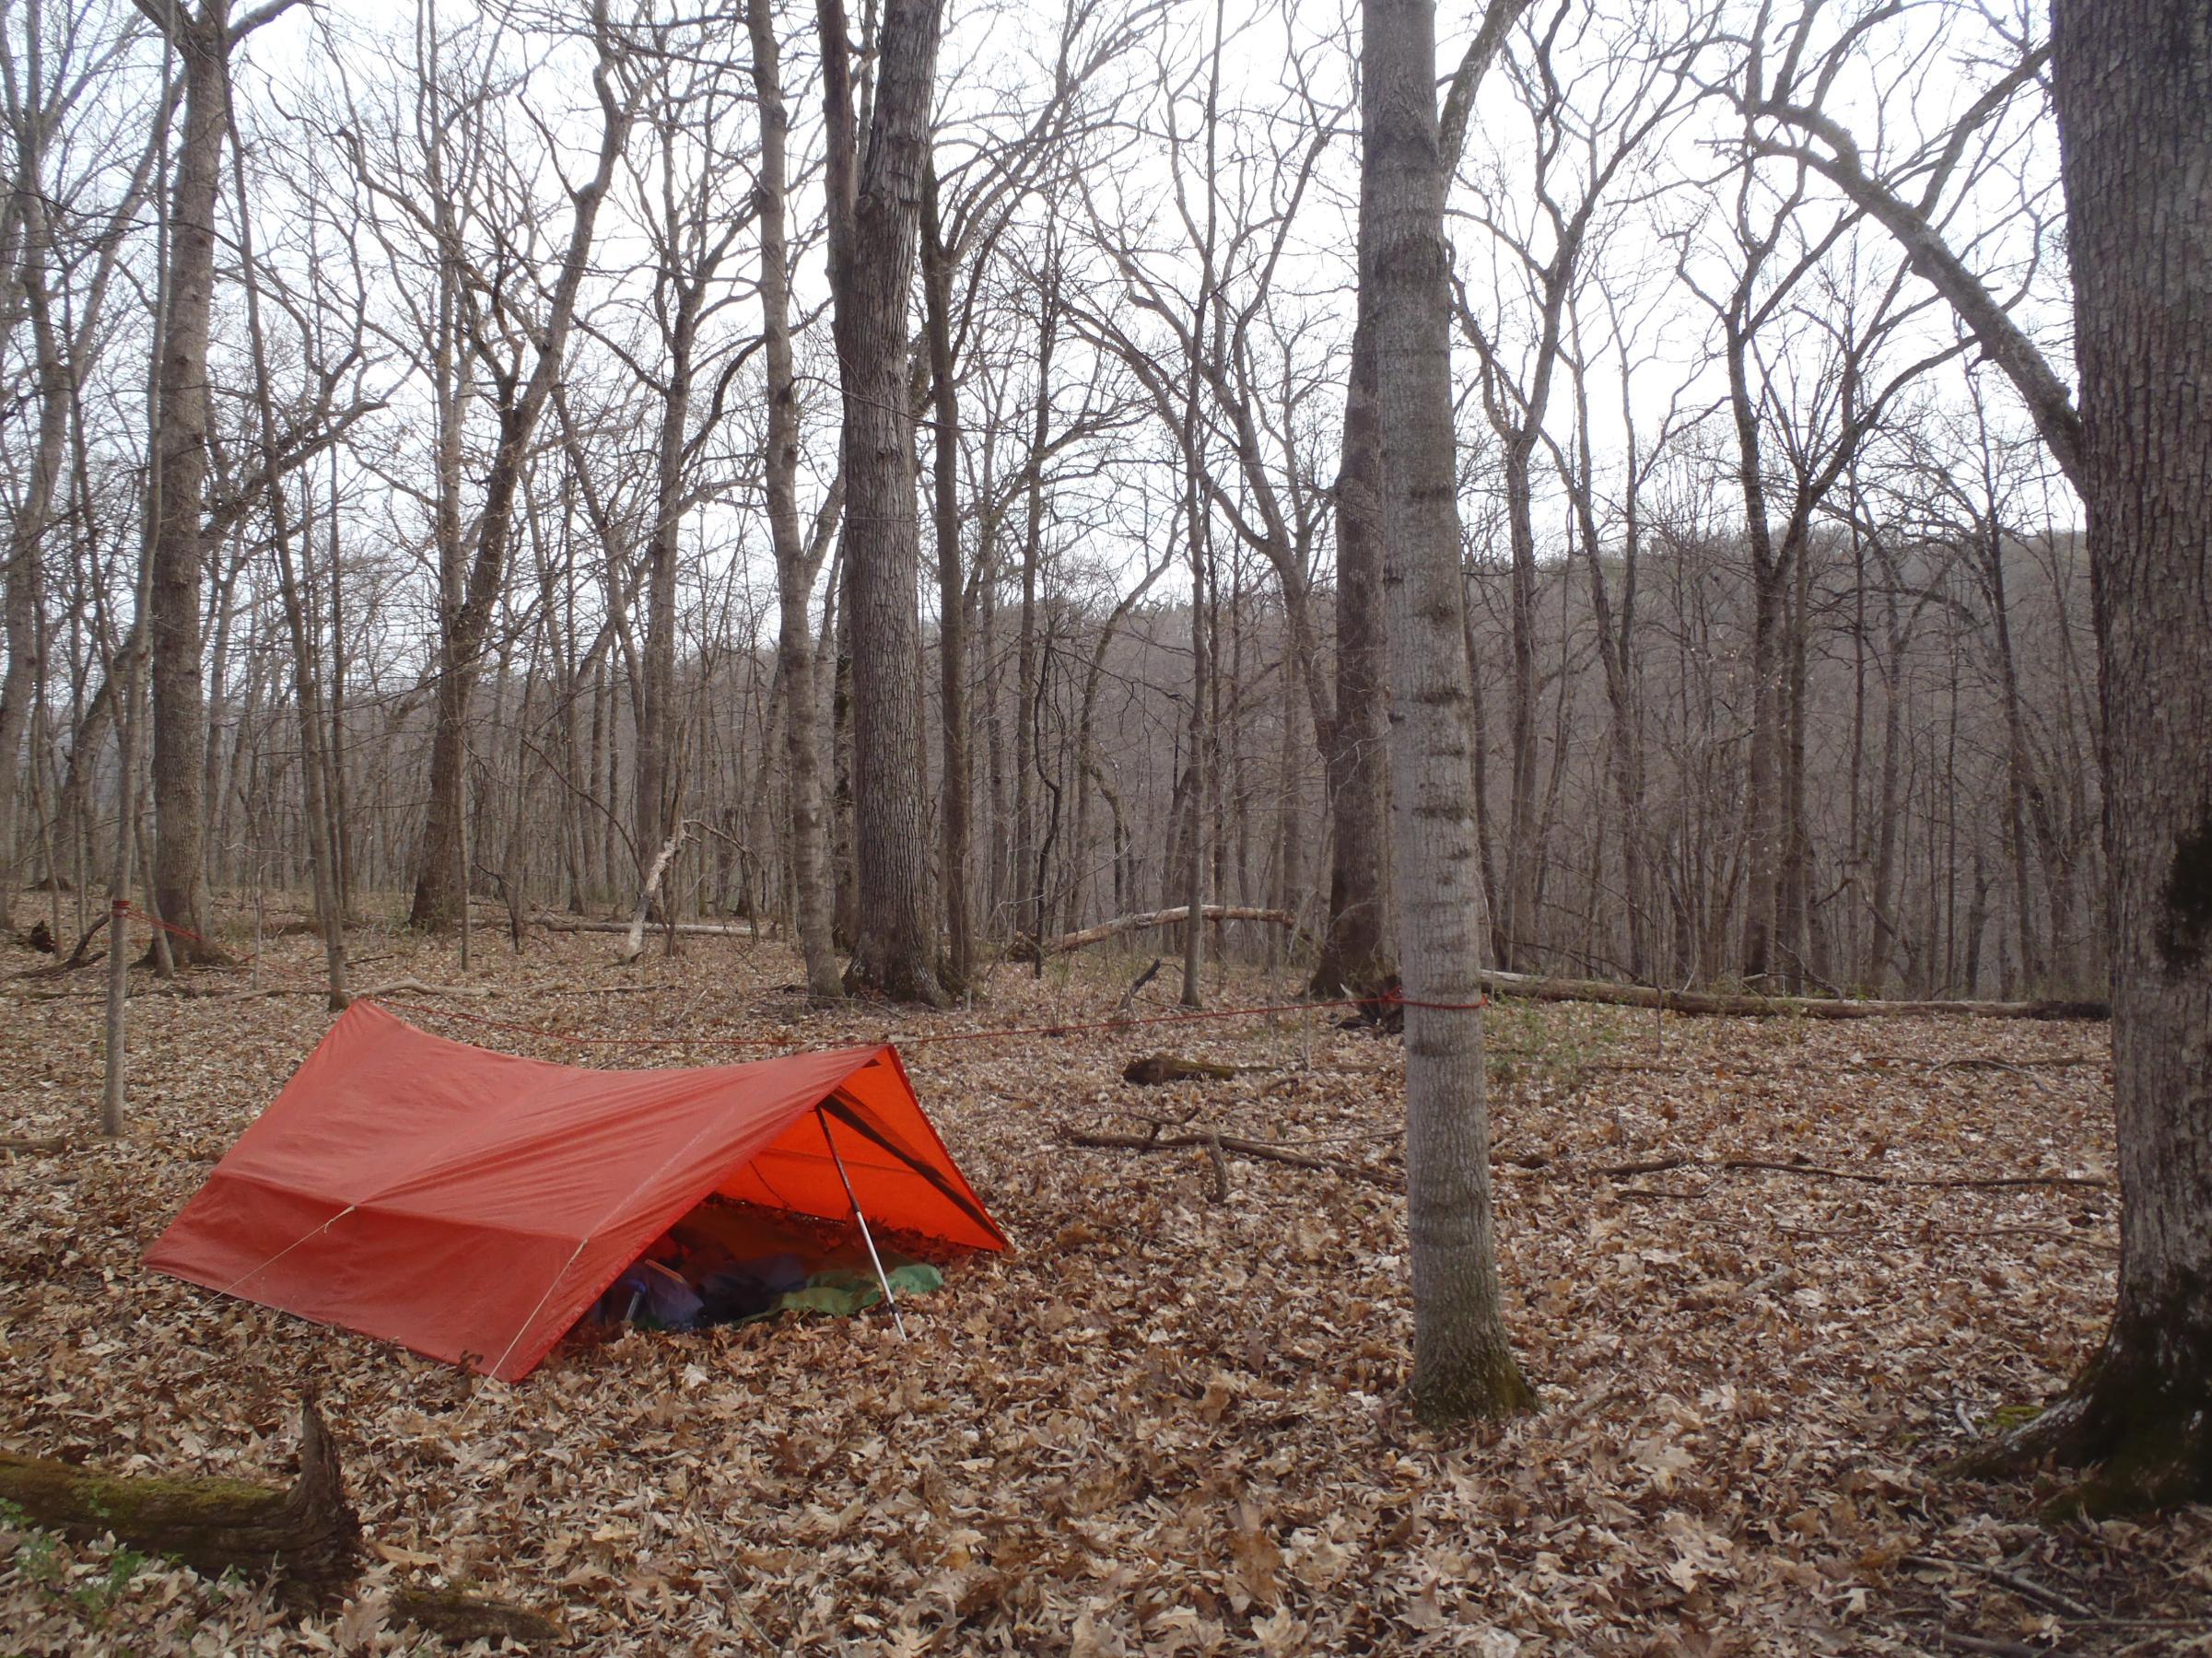 One of these days Iu0027ll get one of those cool solo tents they have at the backpacking stores! & Boundary Waters Message Board Forum BWCA BWCAW Quetico Park